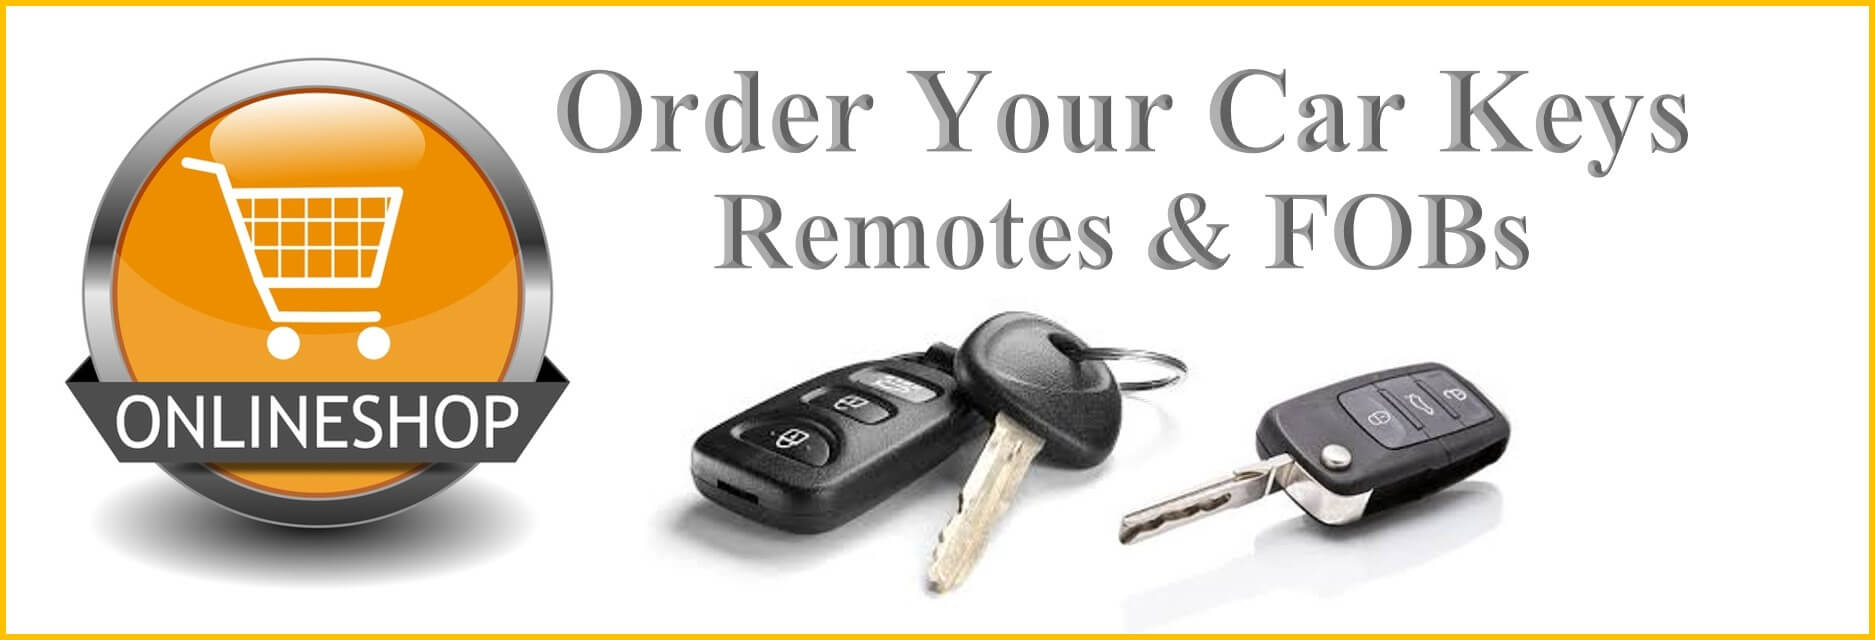 buy-car-keys-online2-2